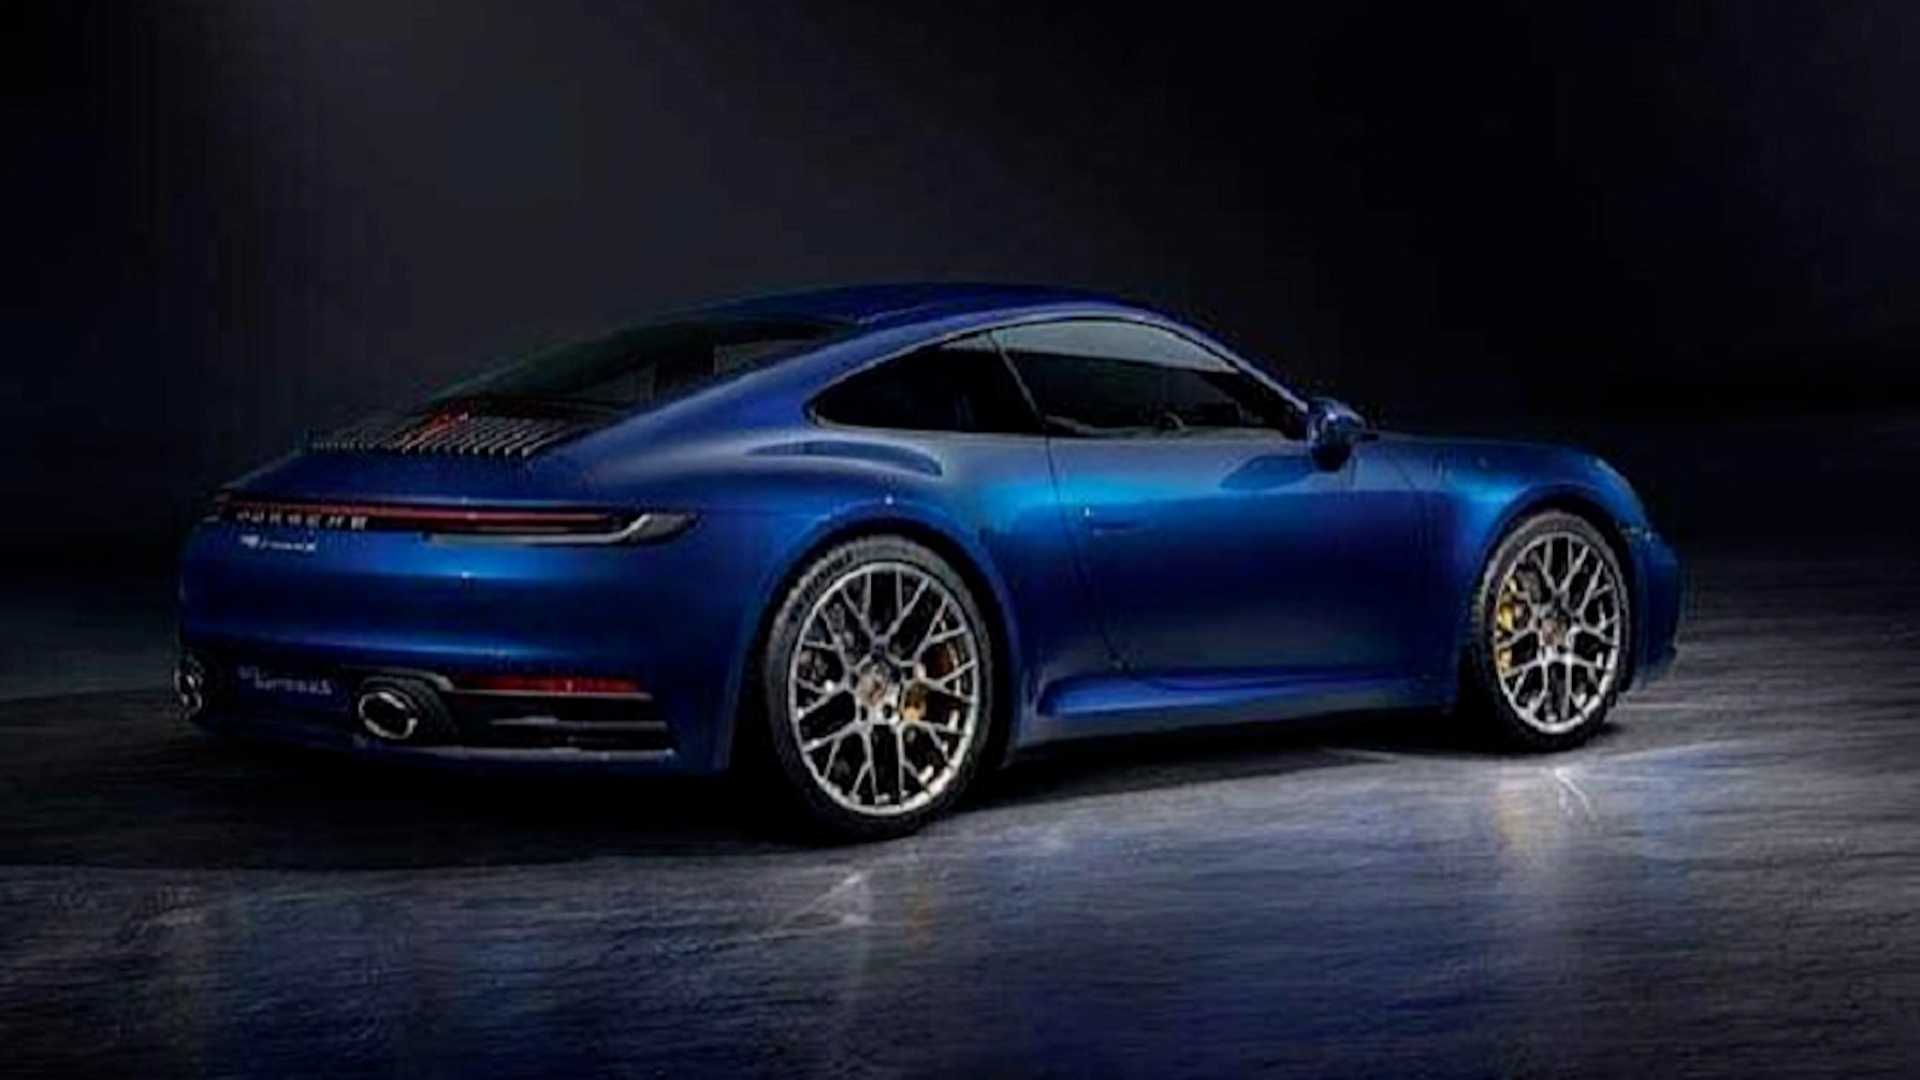 2020 Porsche 911 Interior Revealed in Mark Webber Test ...